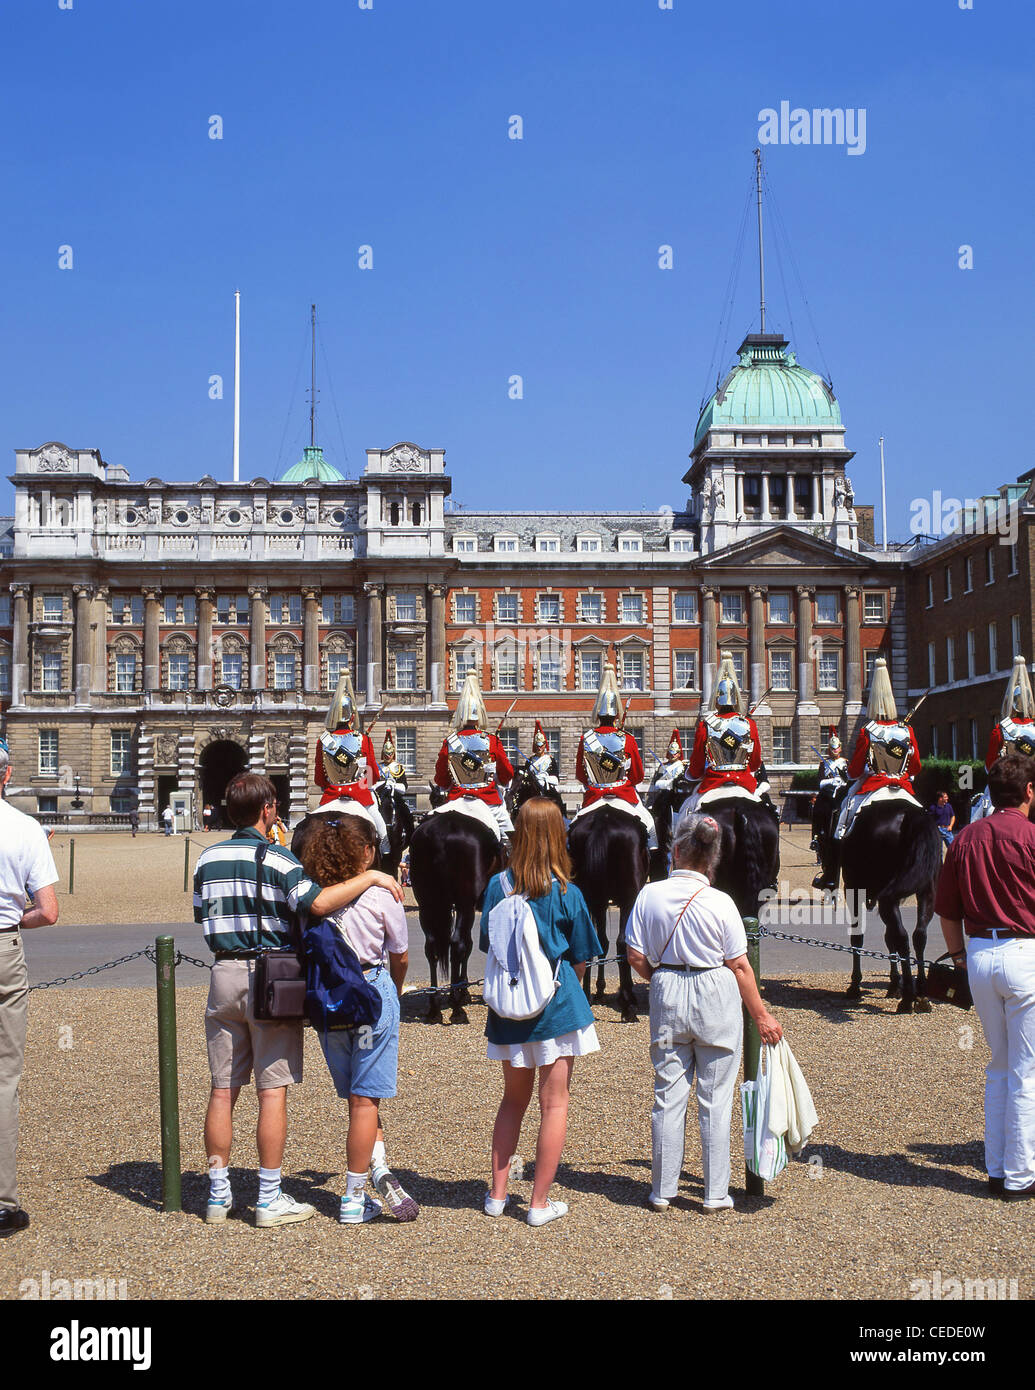 Changing of the Guard ceremony, Horse Guards Parade, Whitehall, City of Westminster, London, England, United Kingdom - Stock Image